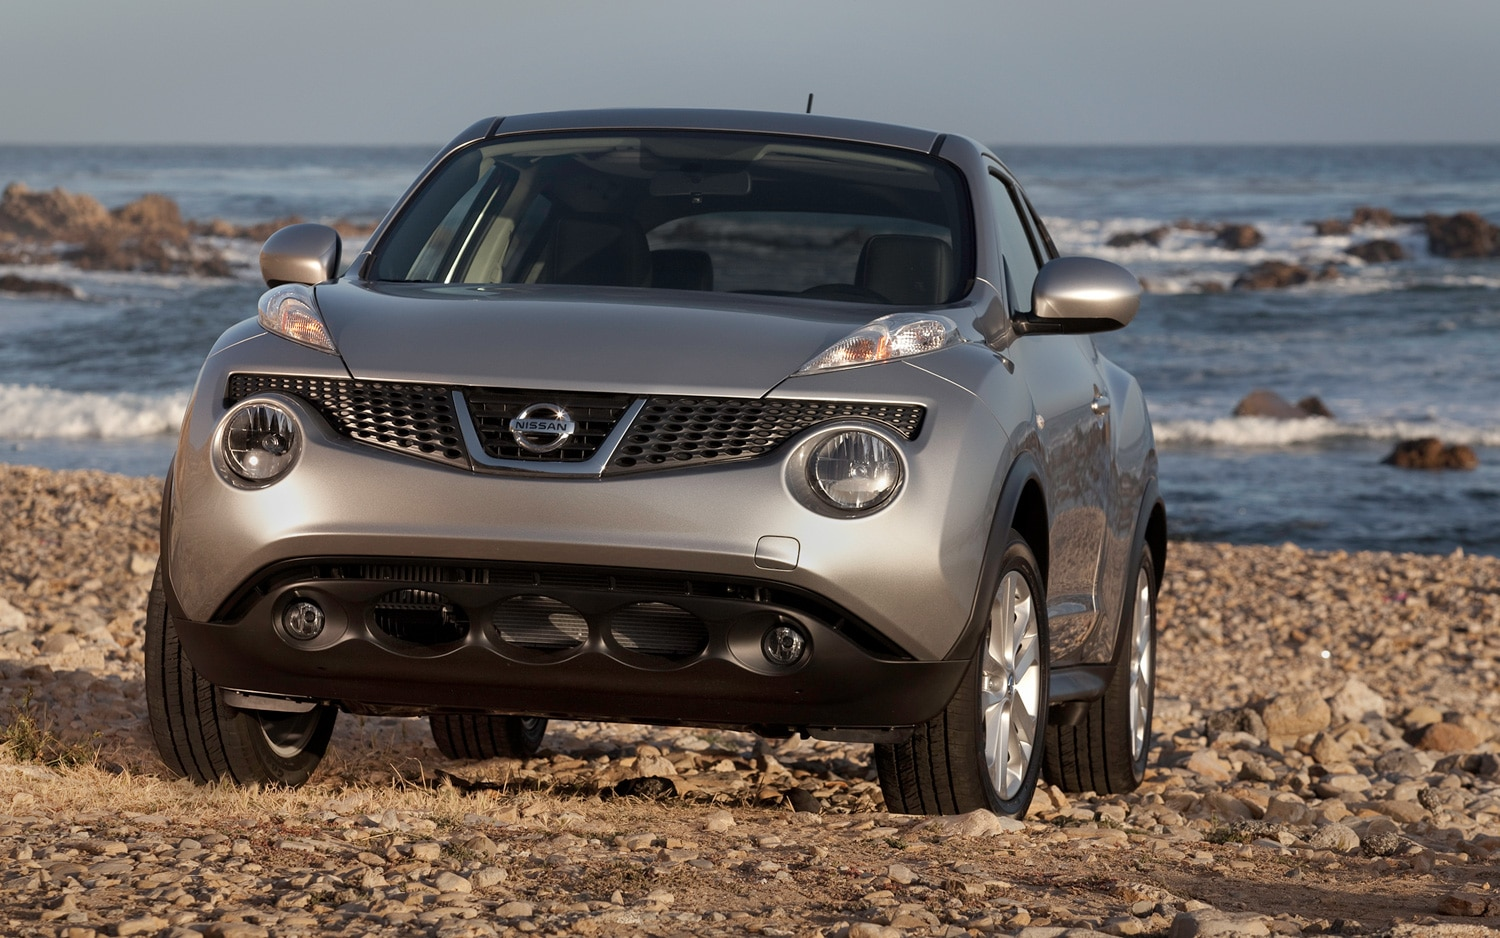 2013 nissan juke msrps revealed base model costs 20 770. Black Bedroom Furniture Sets. Home Design Ideas